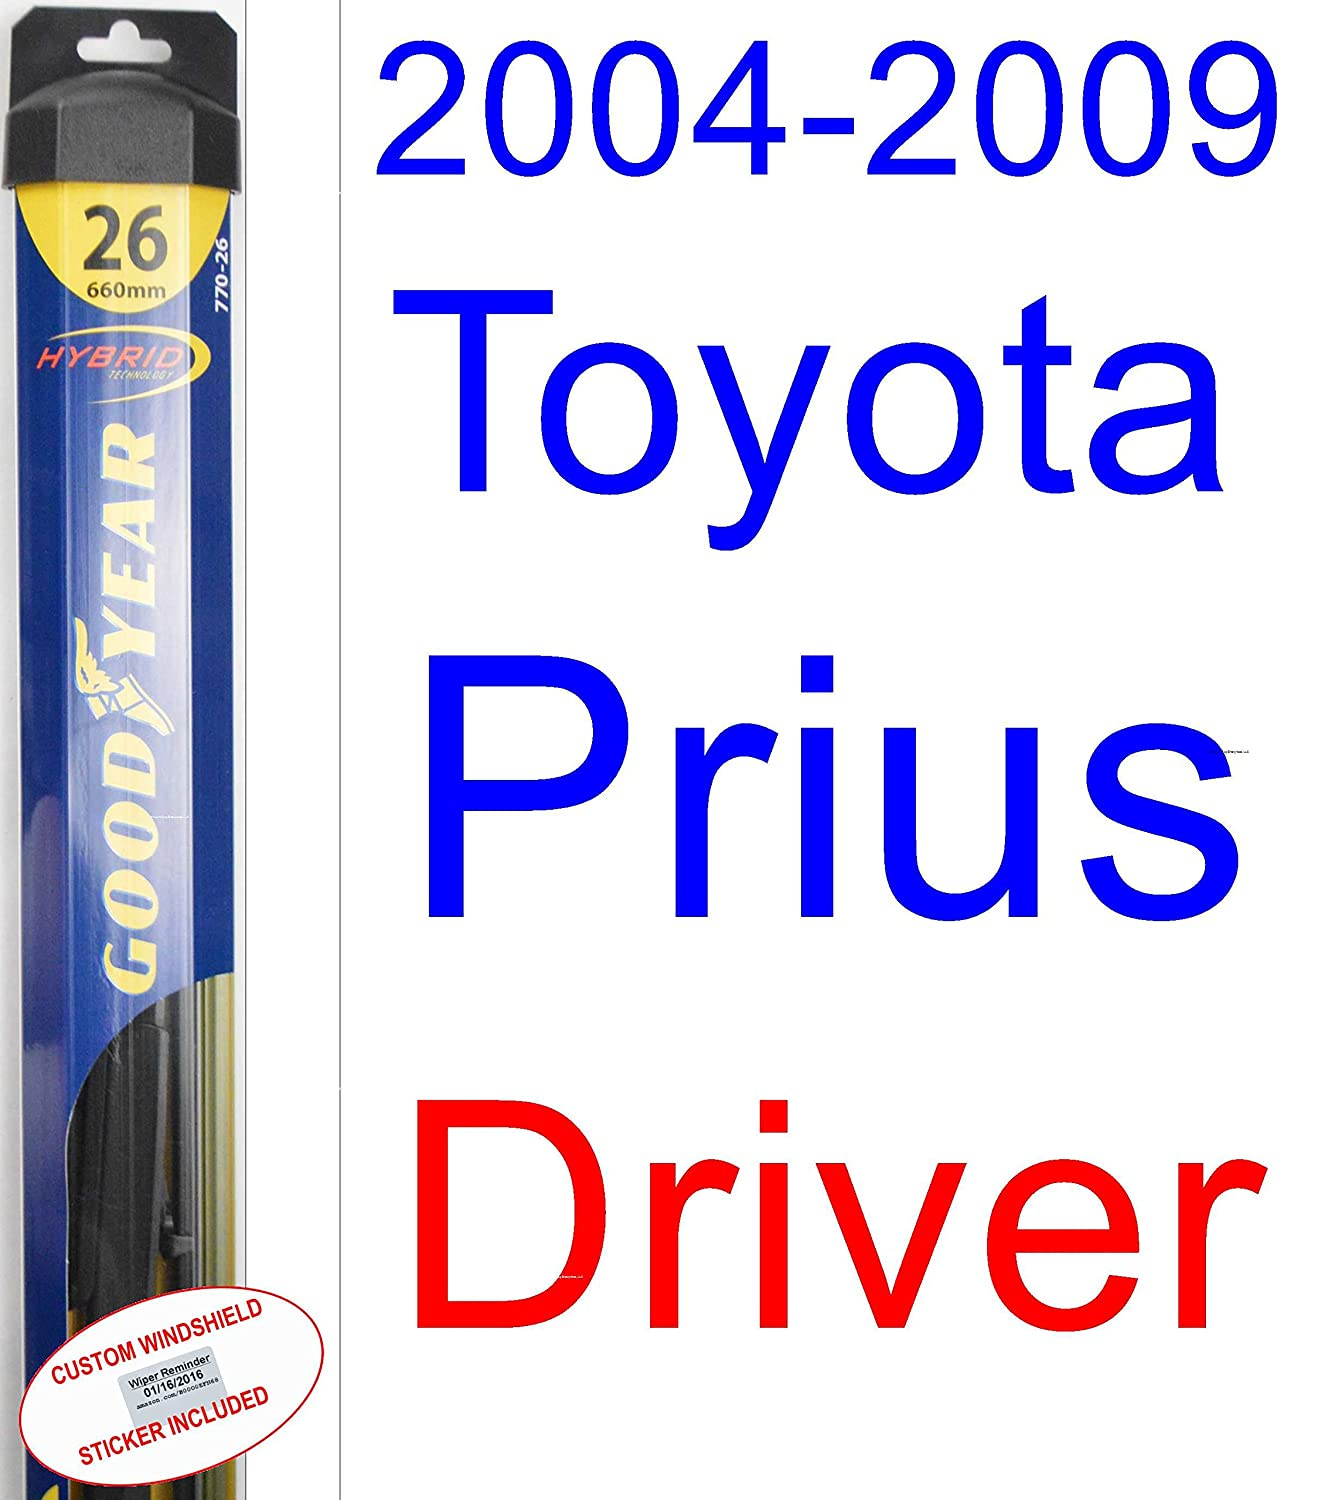 Amazon.com: 2004-2009 Toyota Prius Replacement Wiper Blade Set/Kit (Set of 3 Blades) (Goodyear Wiper Blades-Hybrid) (2005,2006,2007,2008): Automotive